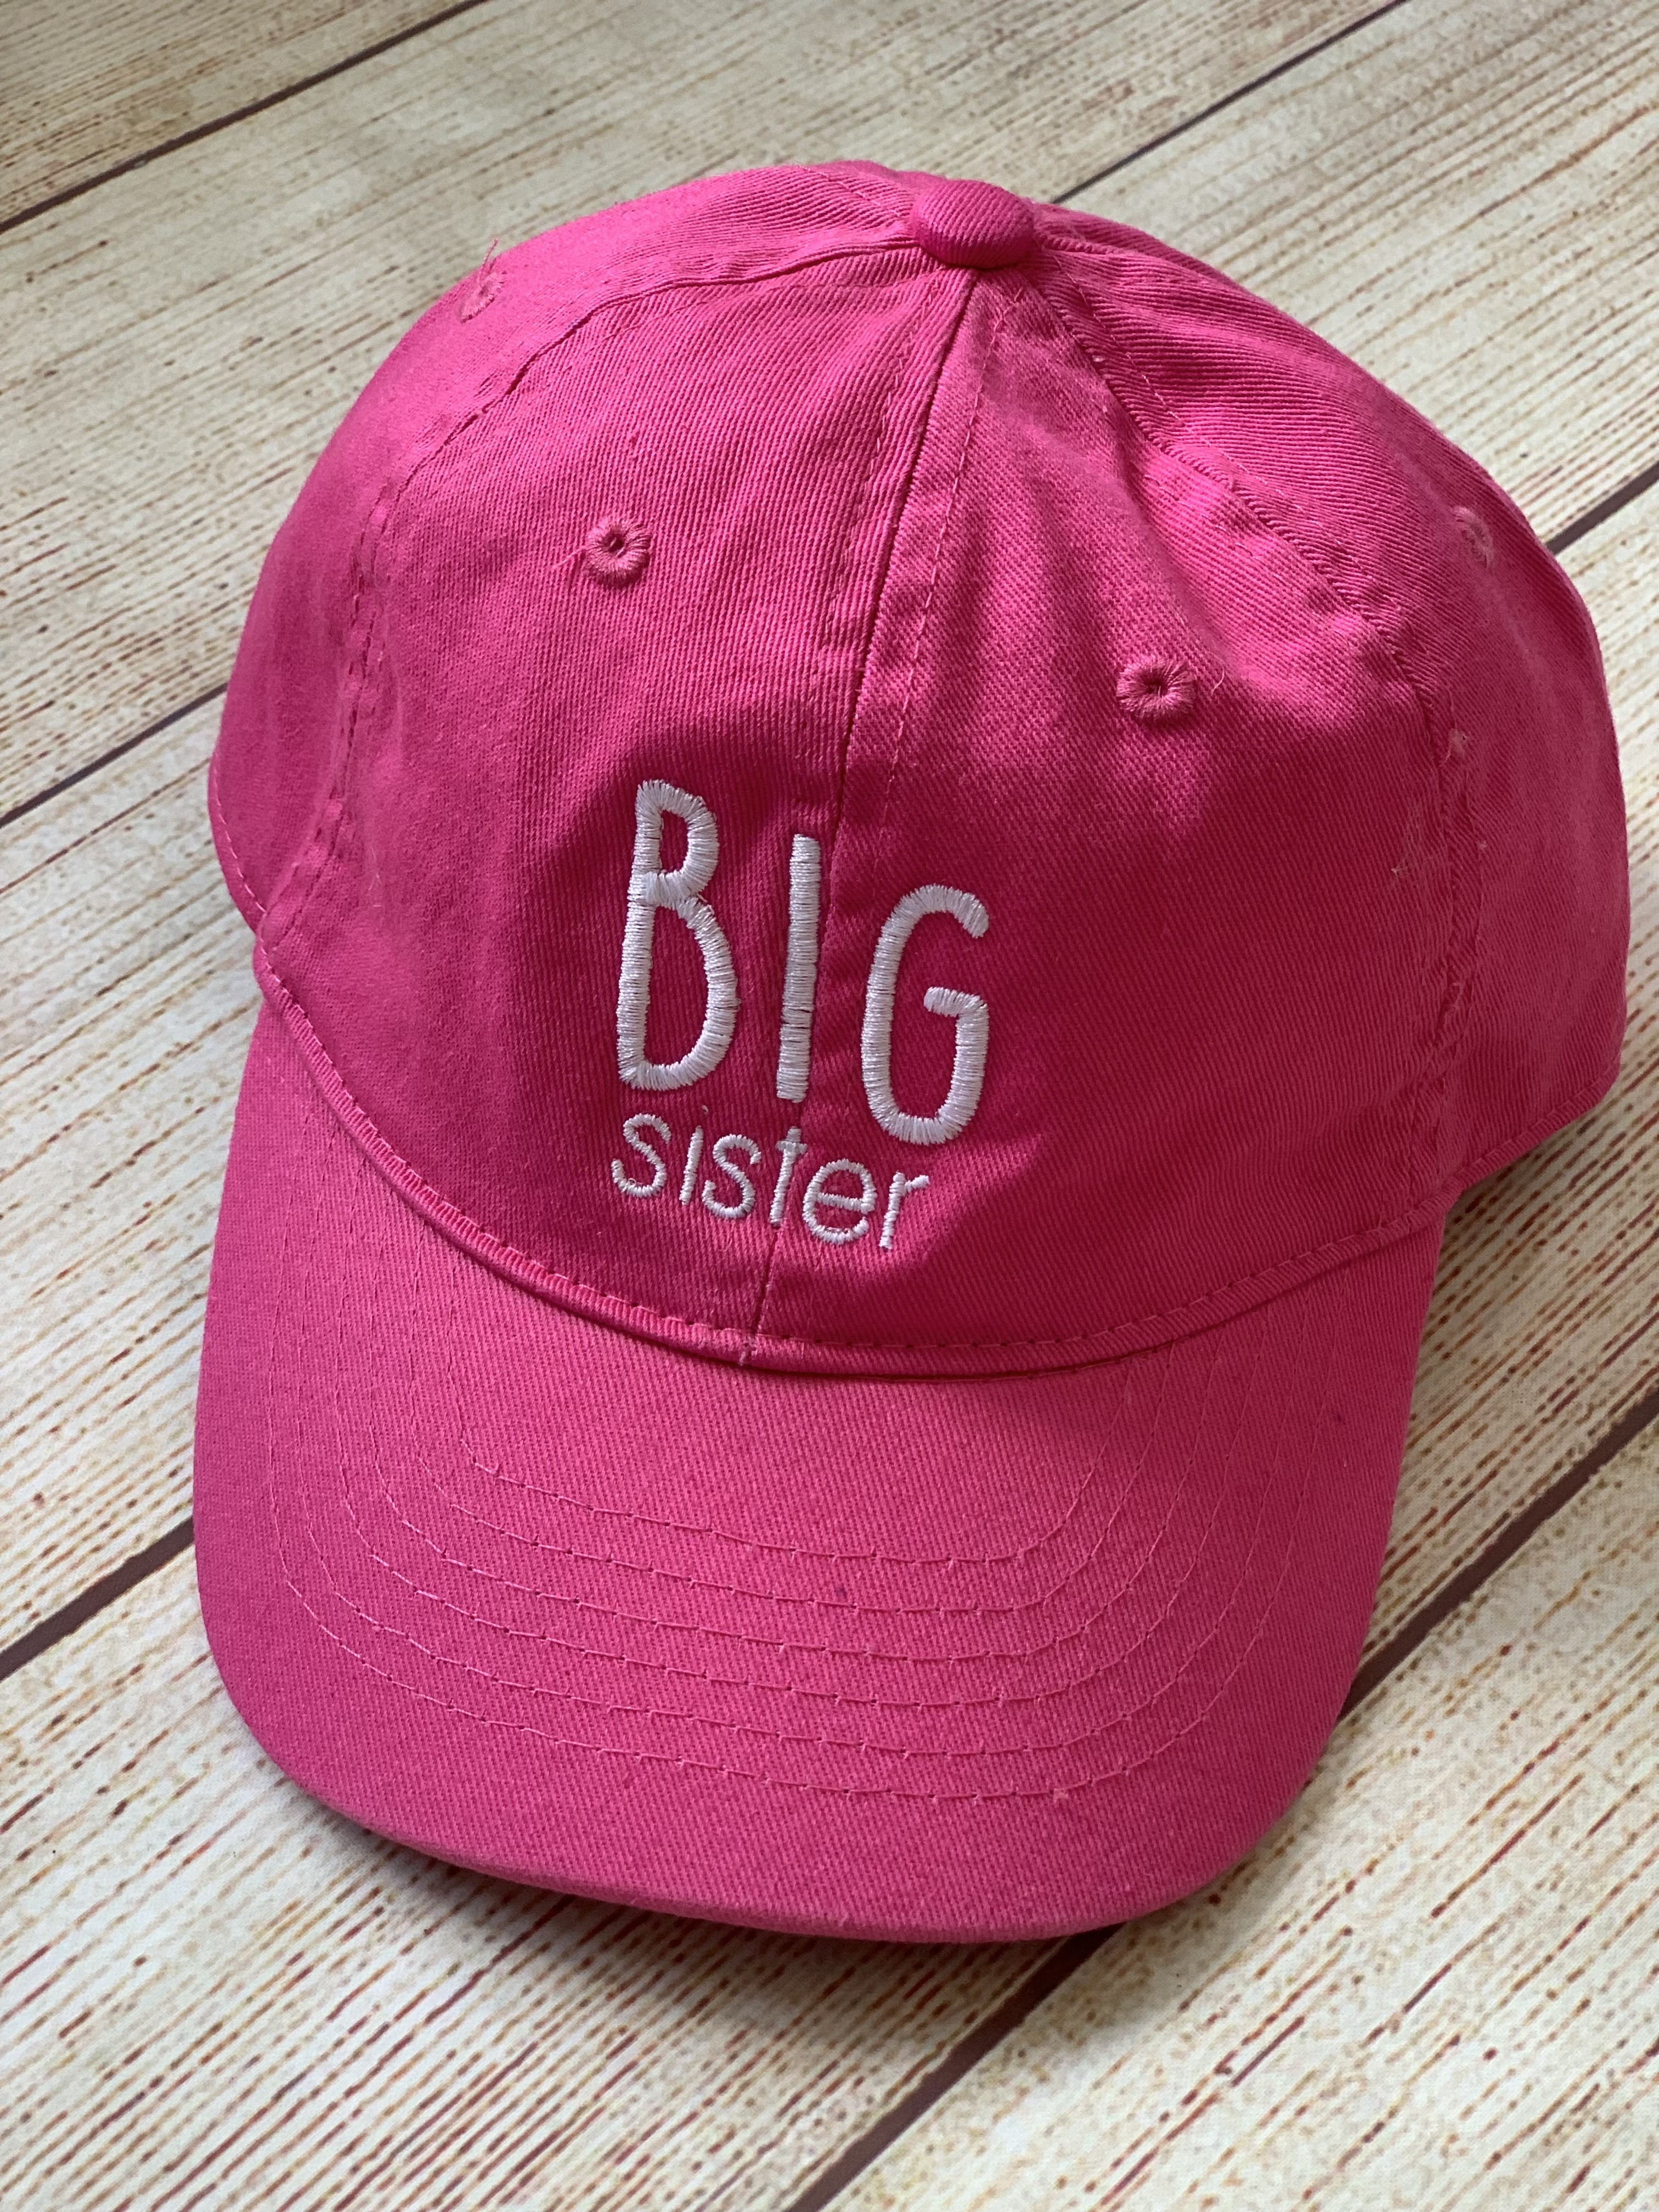 Bring a little gift for the big sister. It's adjustable - no size needed!